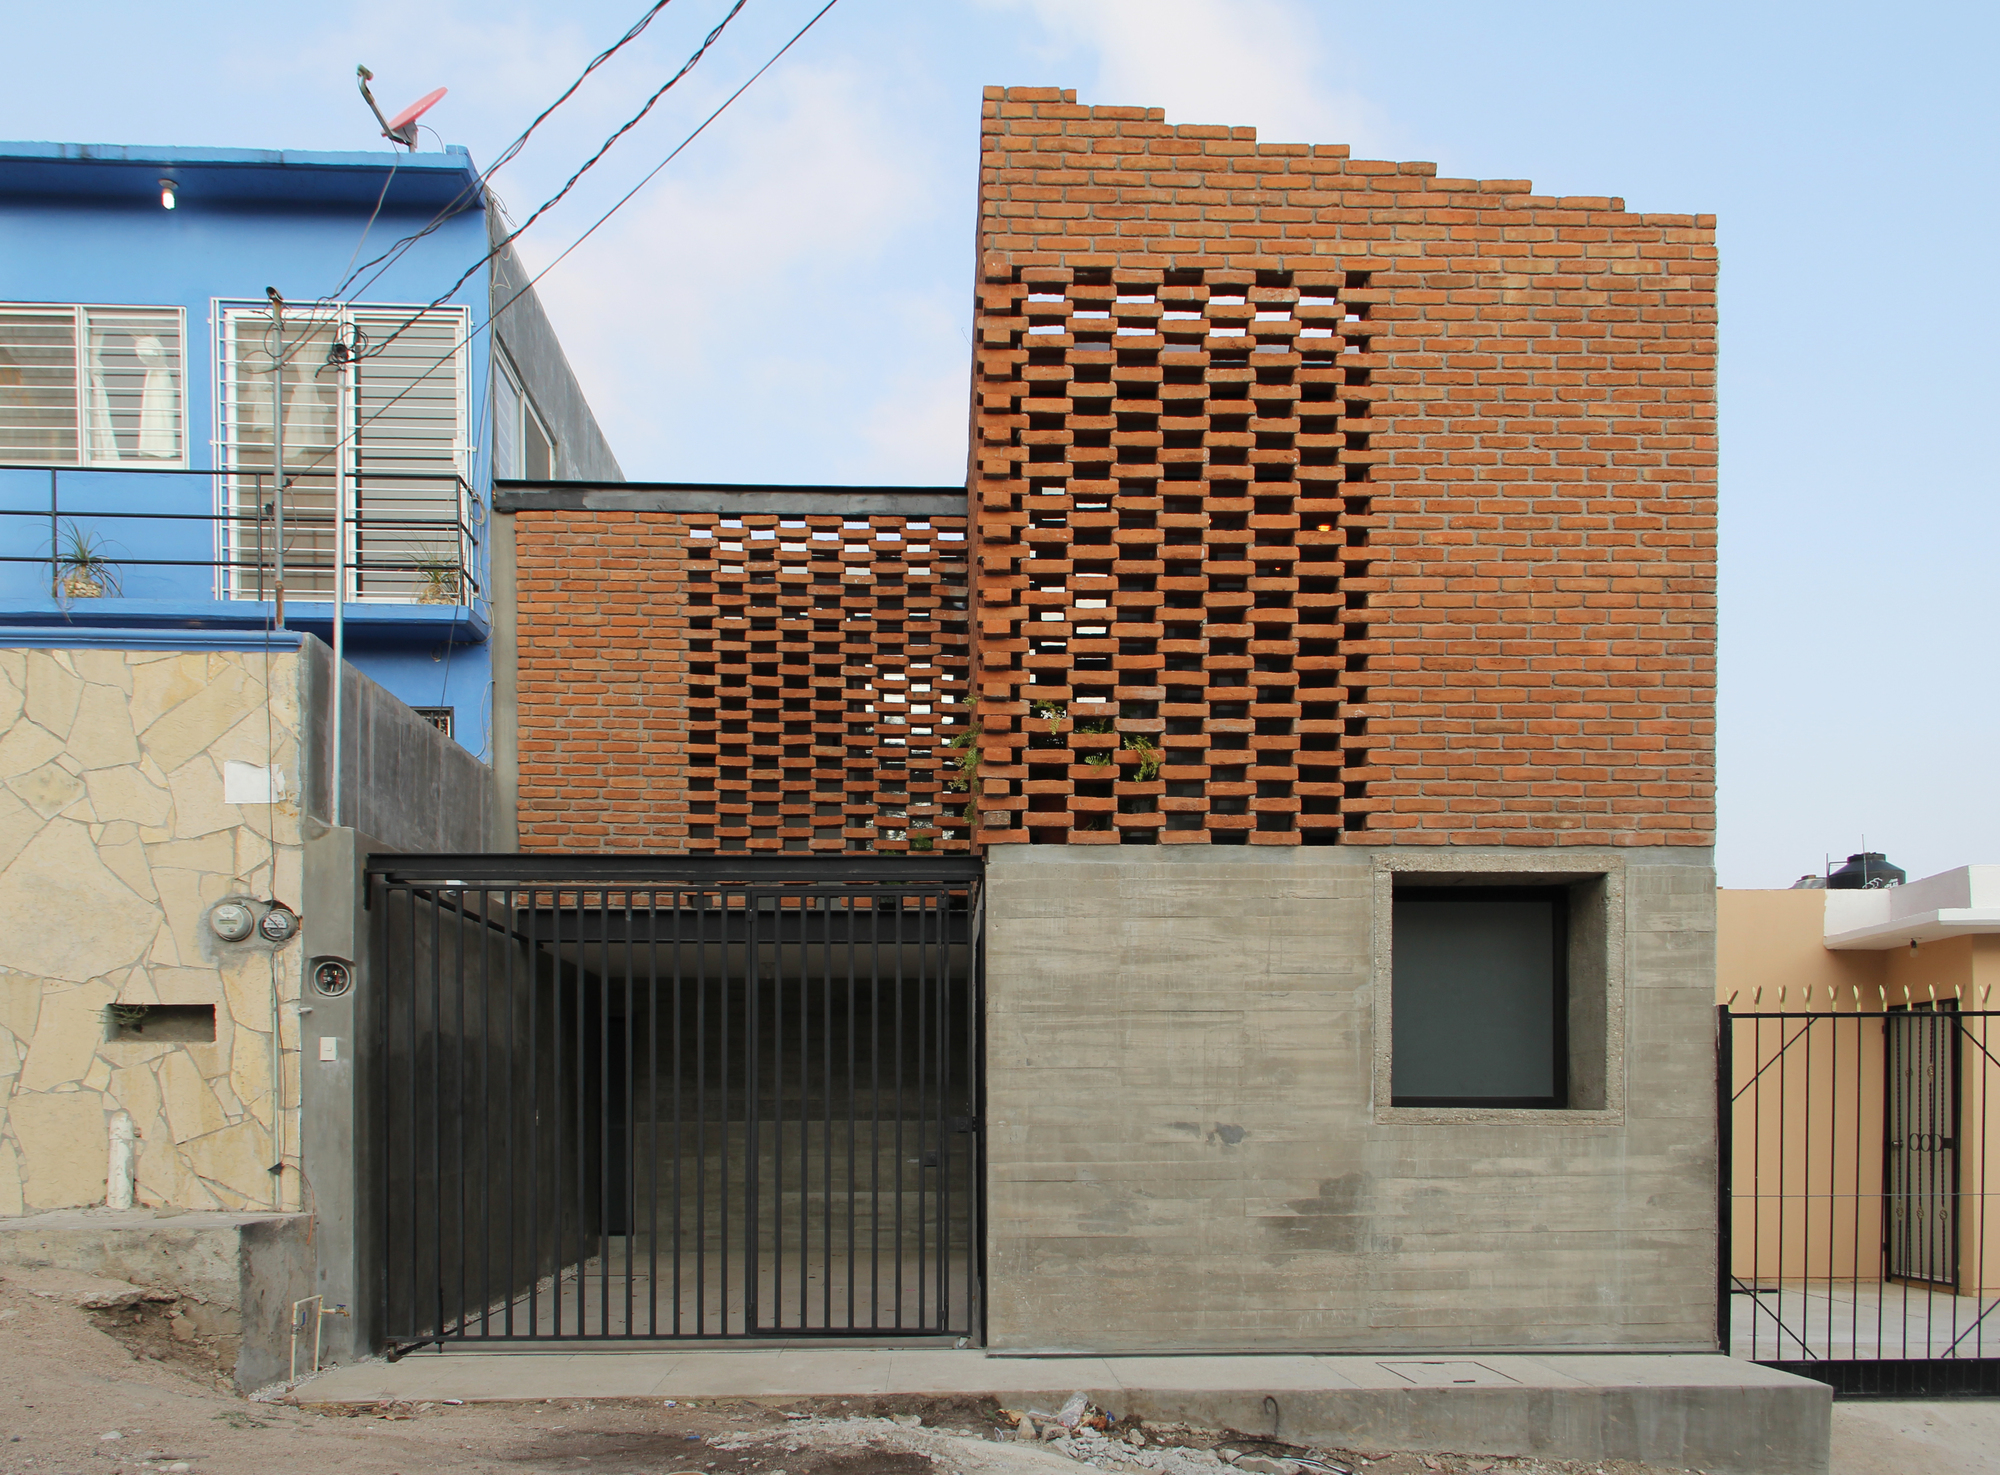 Tadeo house apaloosa estudio de arquitectura y dise o for Arquitectura and design